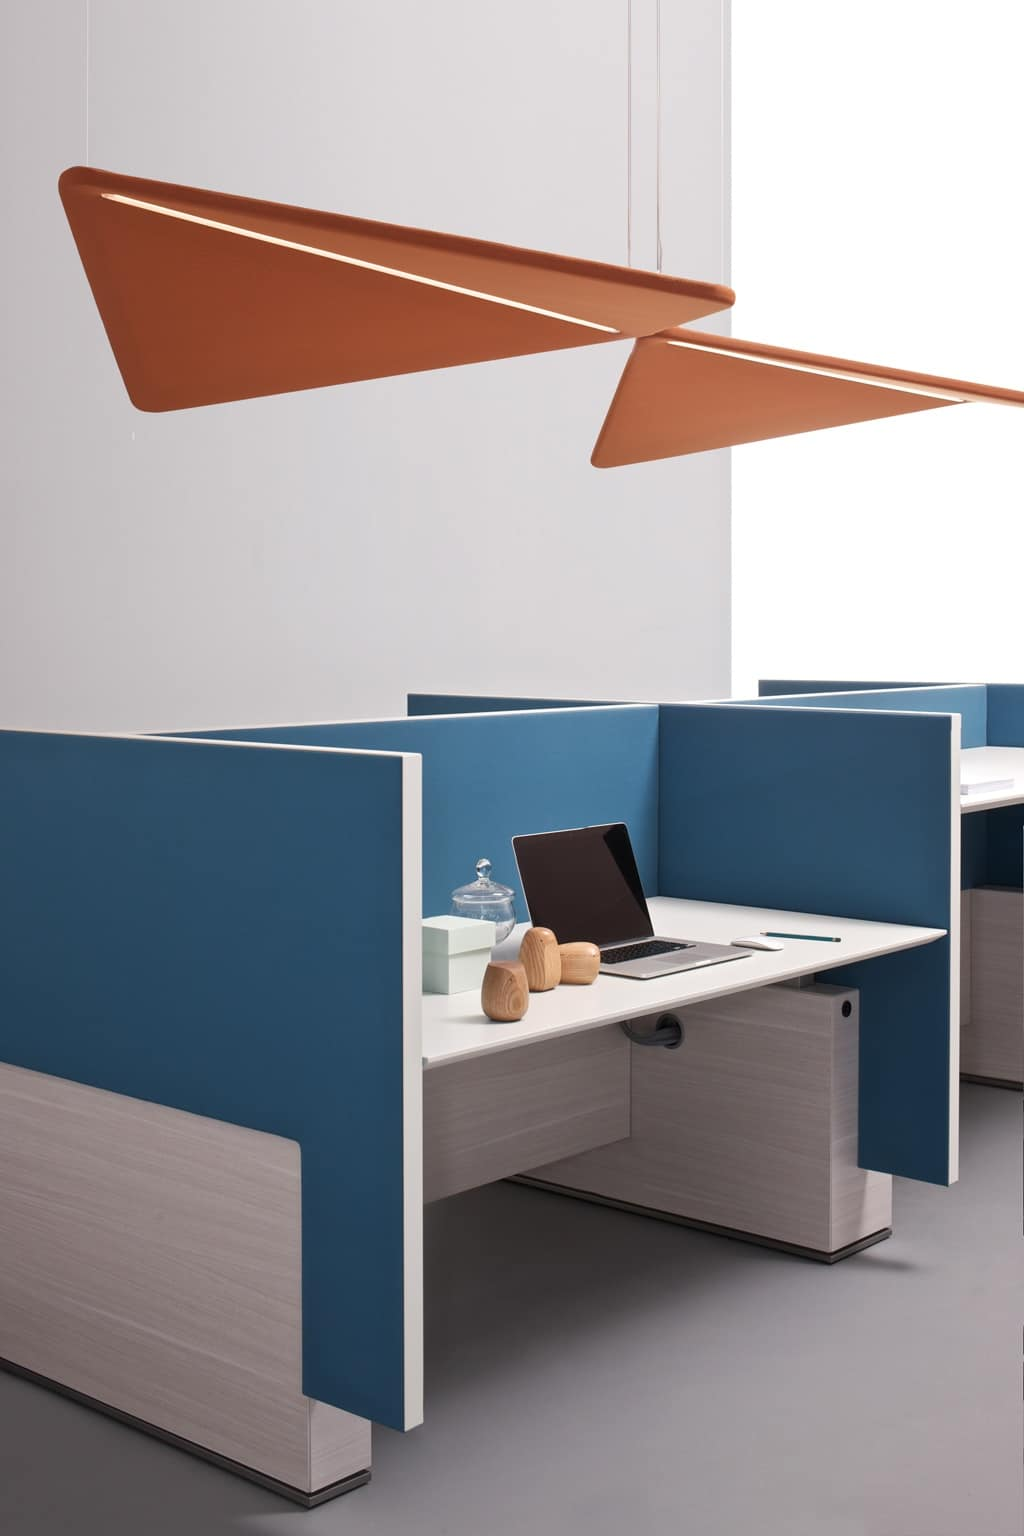 Sound Absorbing Panels For Offices And Meeting Rooms